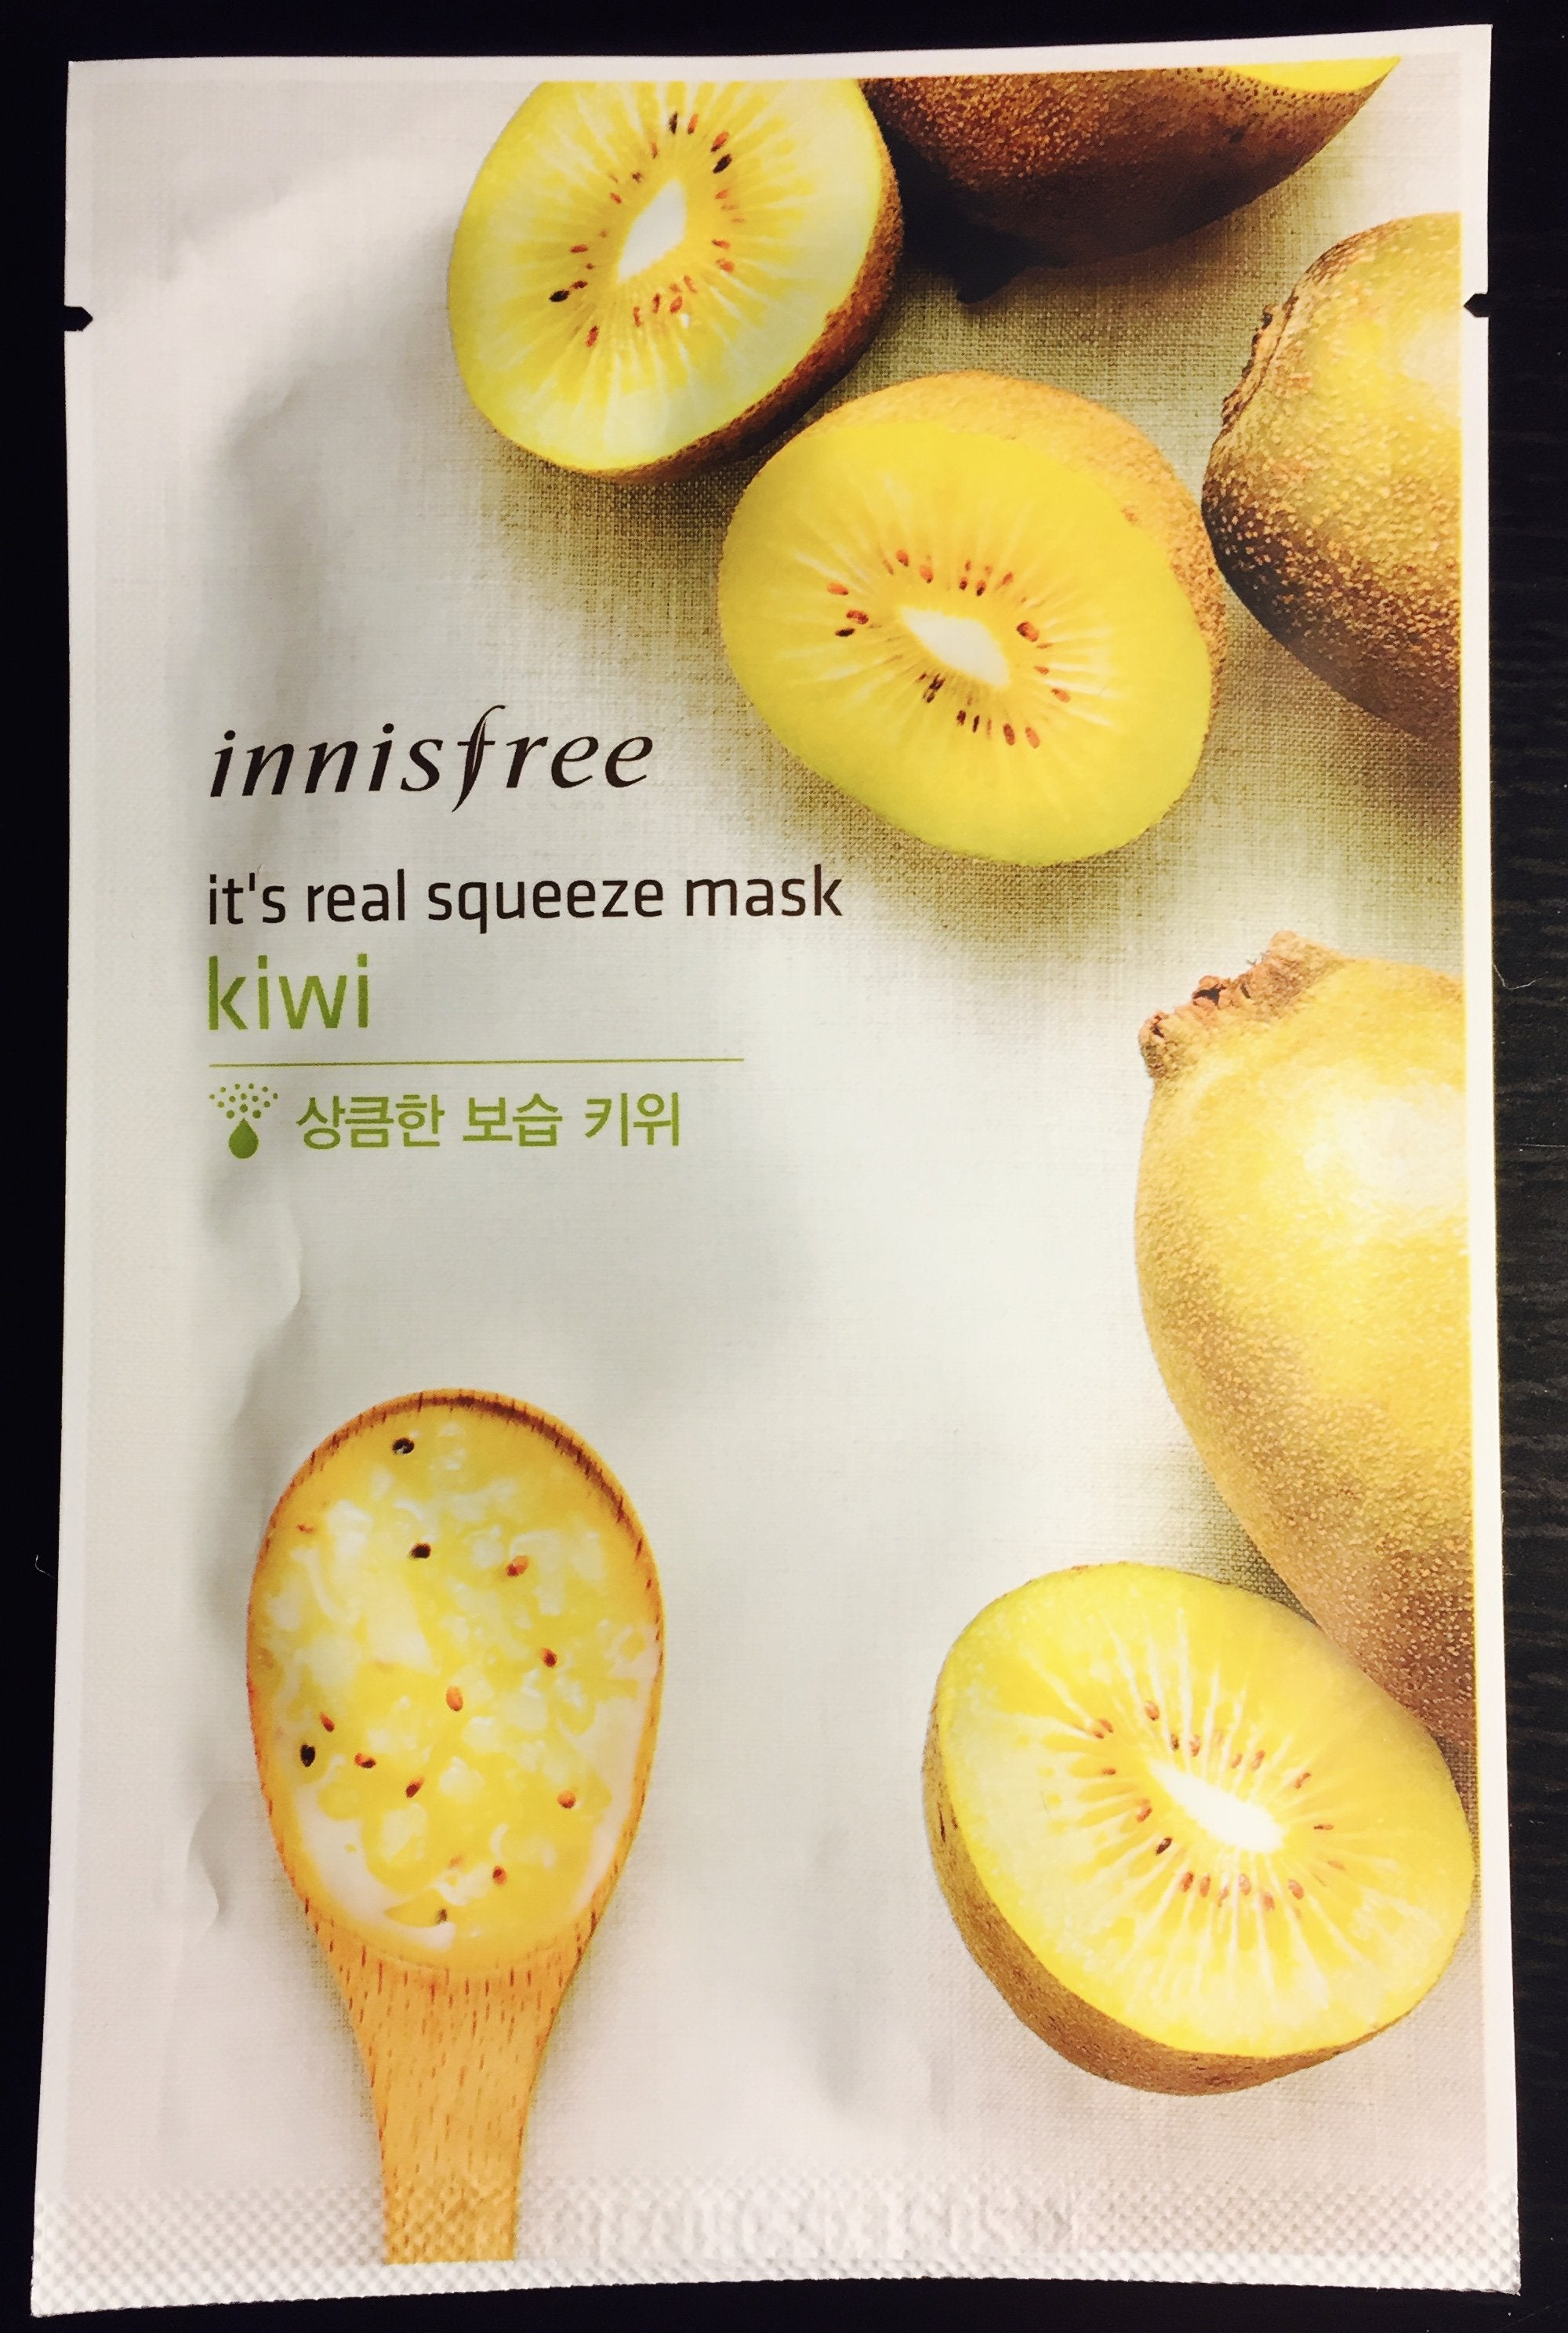 Innisfree It's Real Squeeze Mask: Kiwi - KD Connection Official Merchandise Store